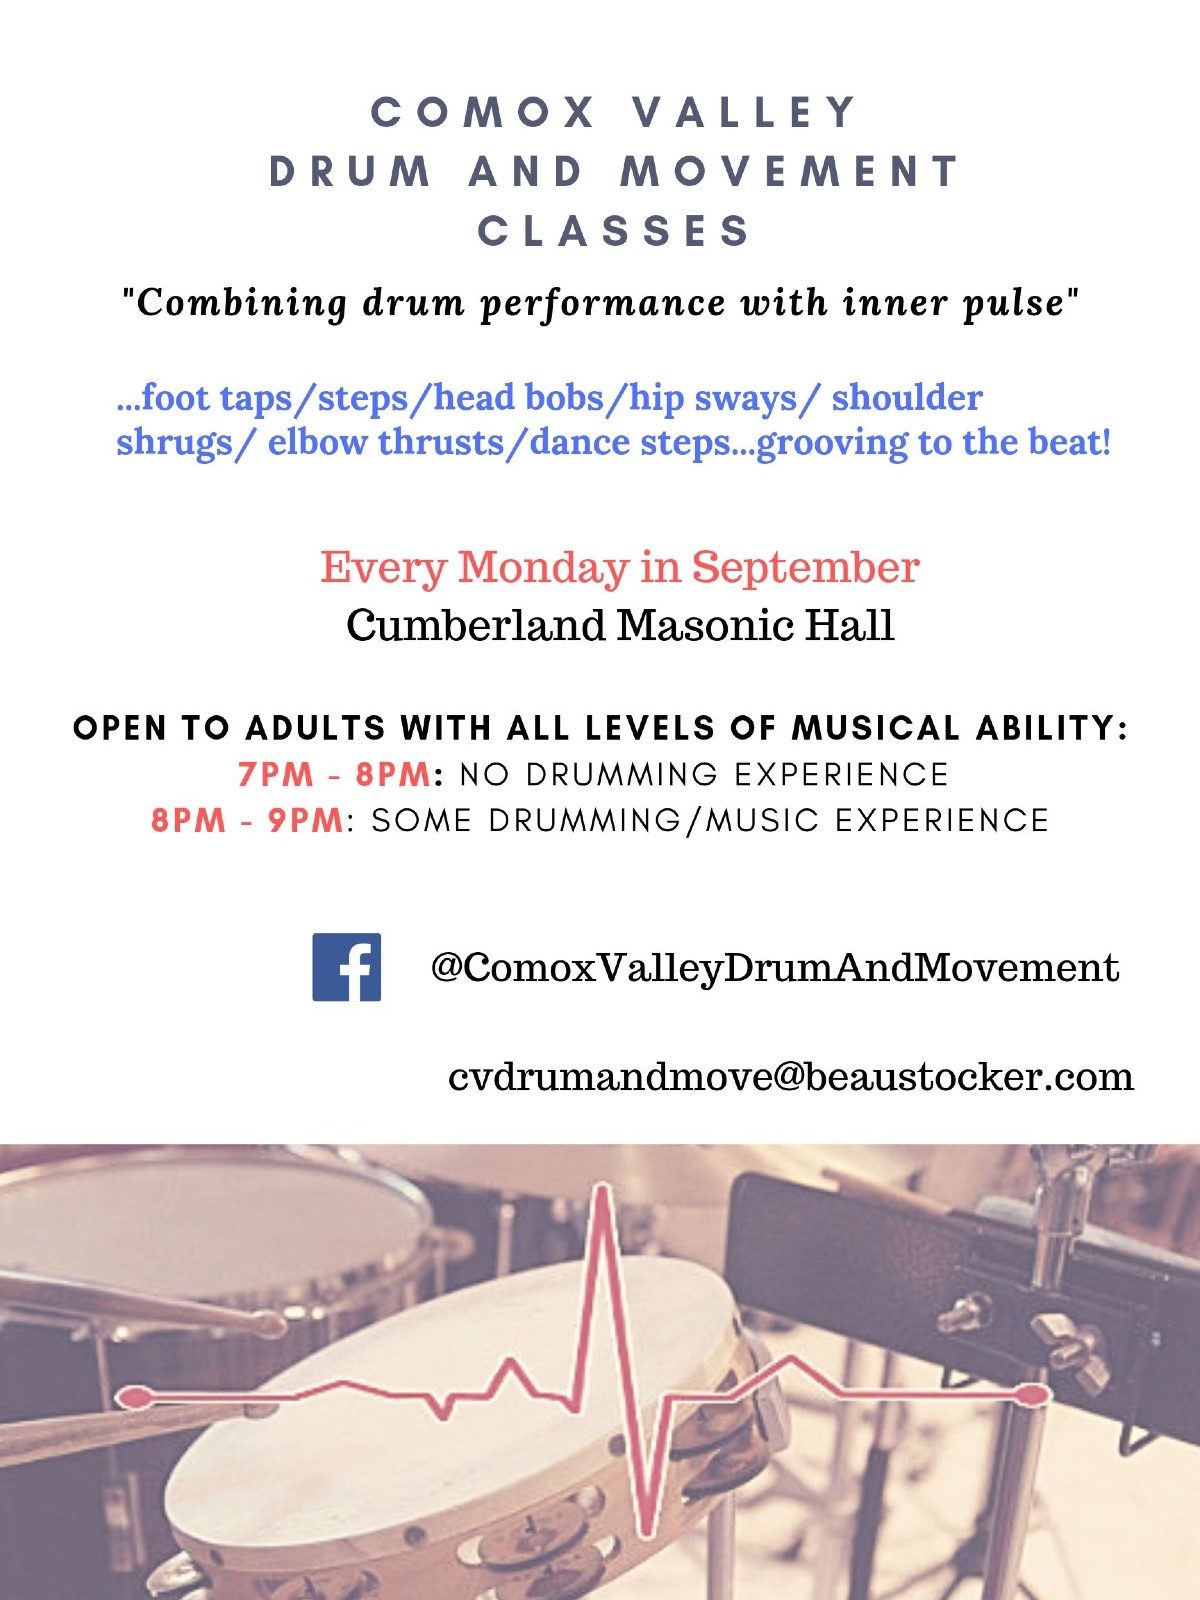 Comox Valley Drum and Movement Classes - Cumberland